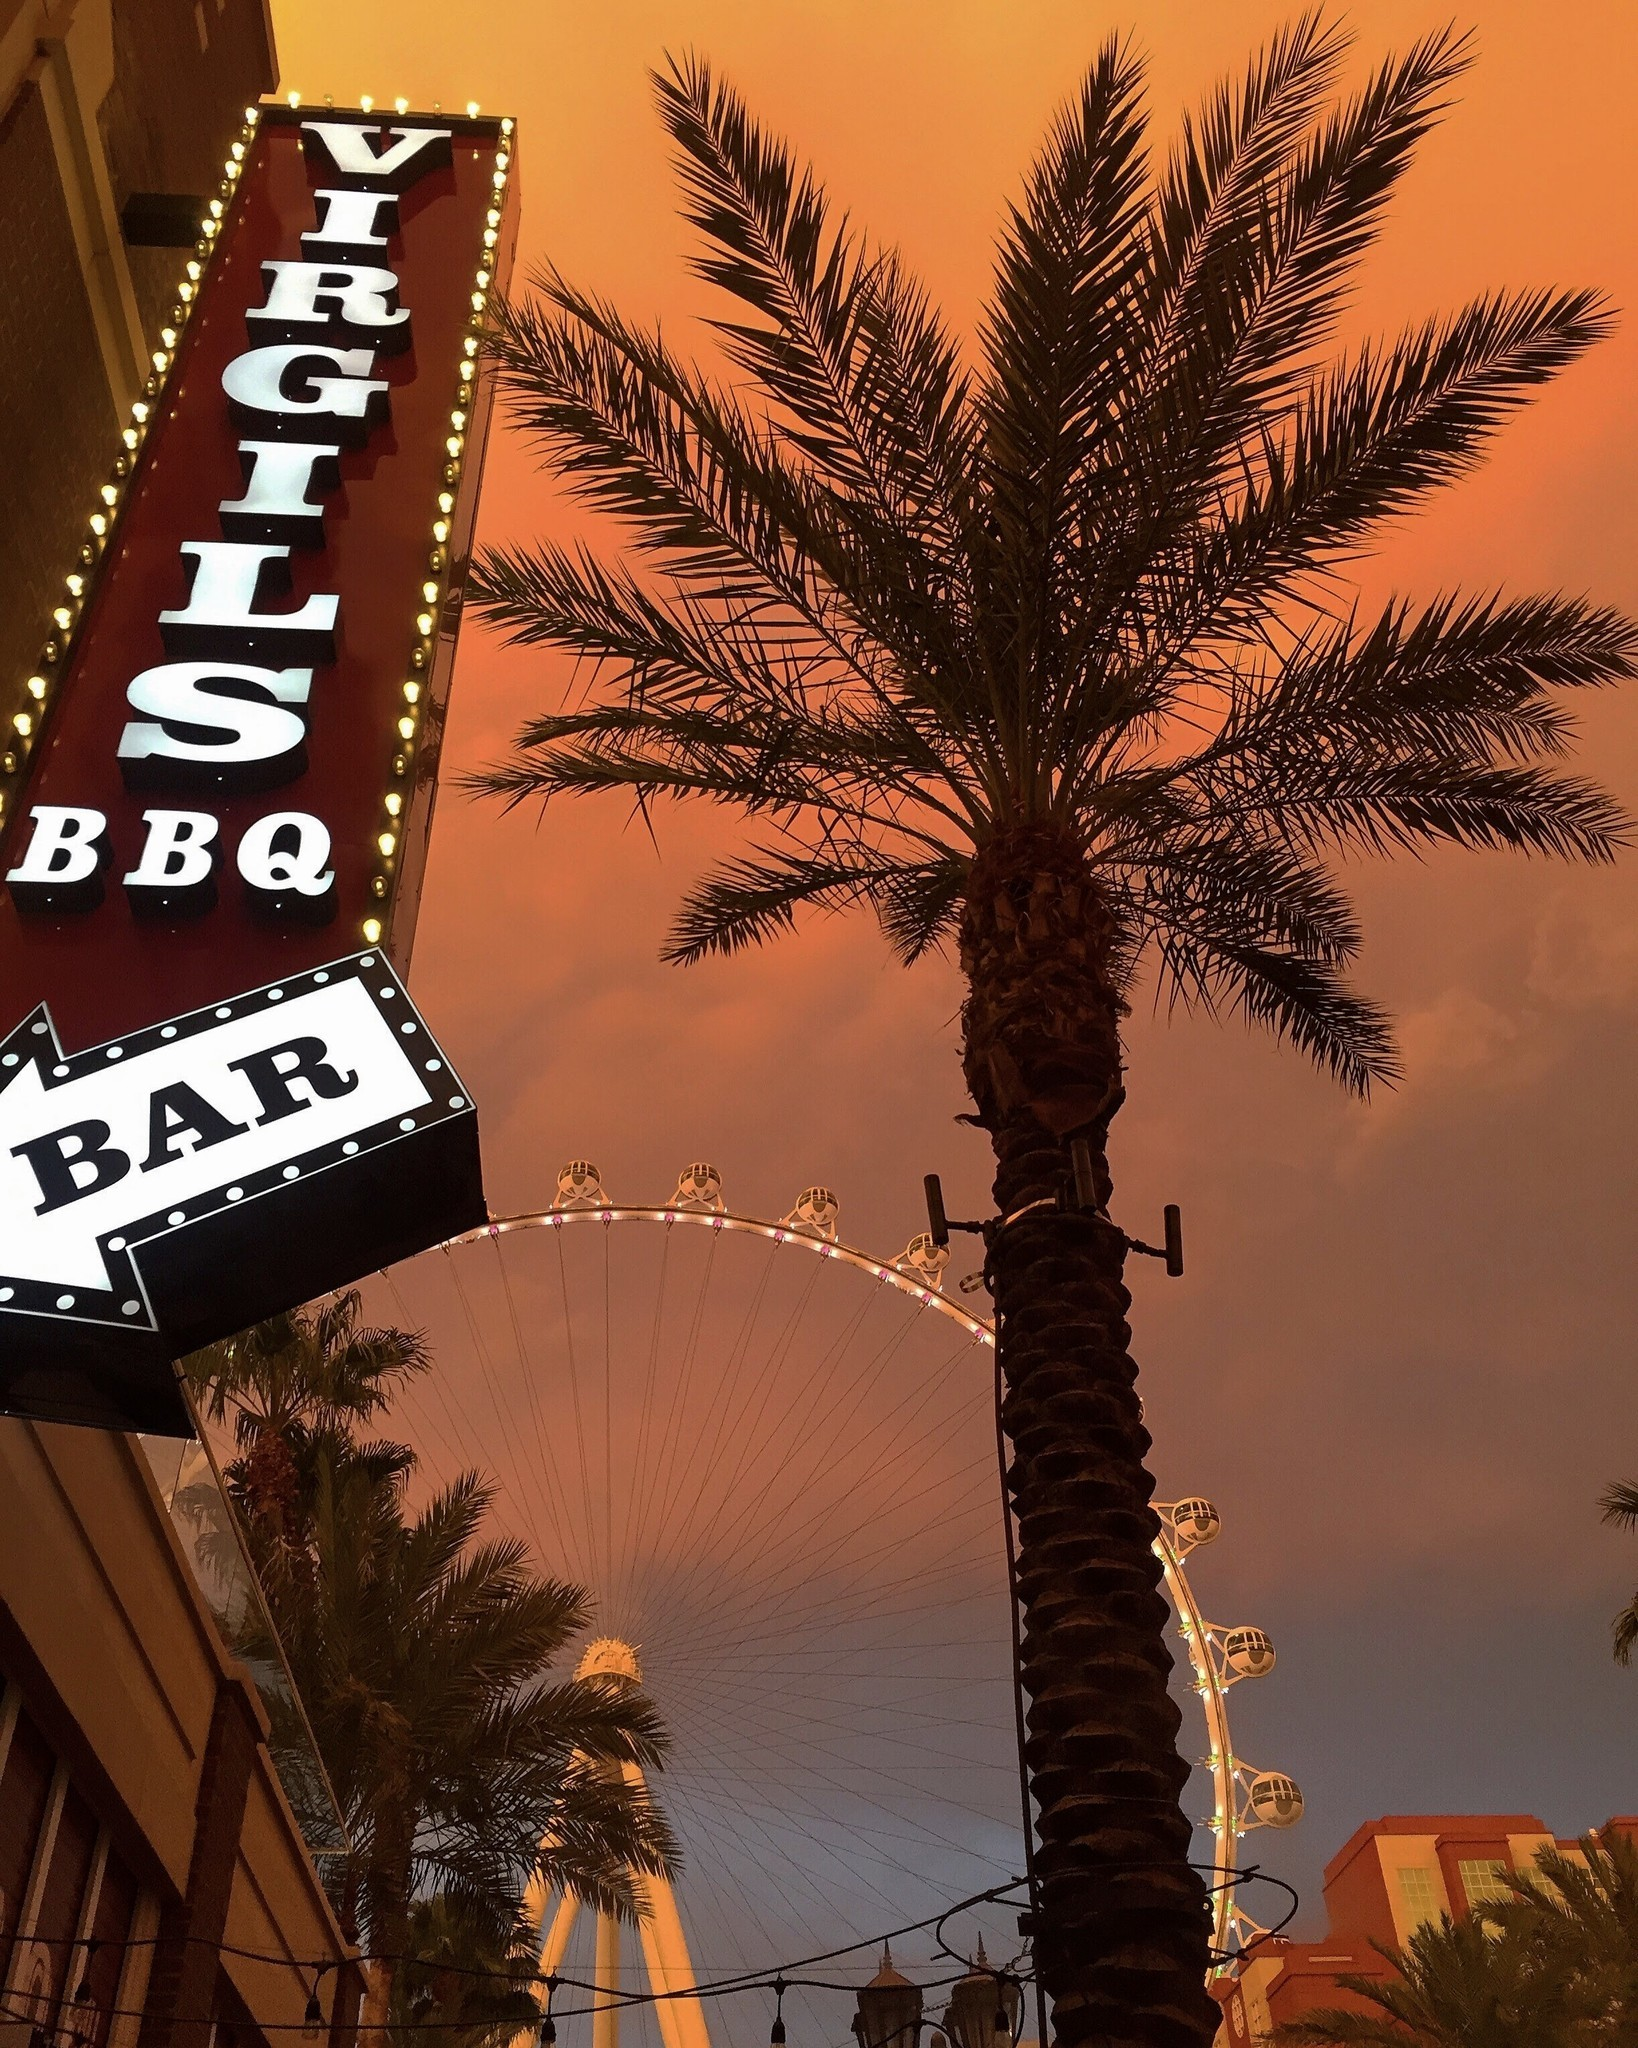 Virgil's Real Barbecue at the Linq Promenade will be tempting sports fans with barbecued pork from a freshly-roasted whole pig.